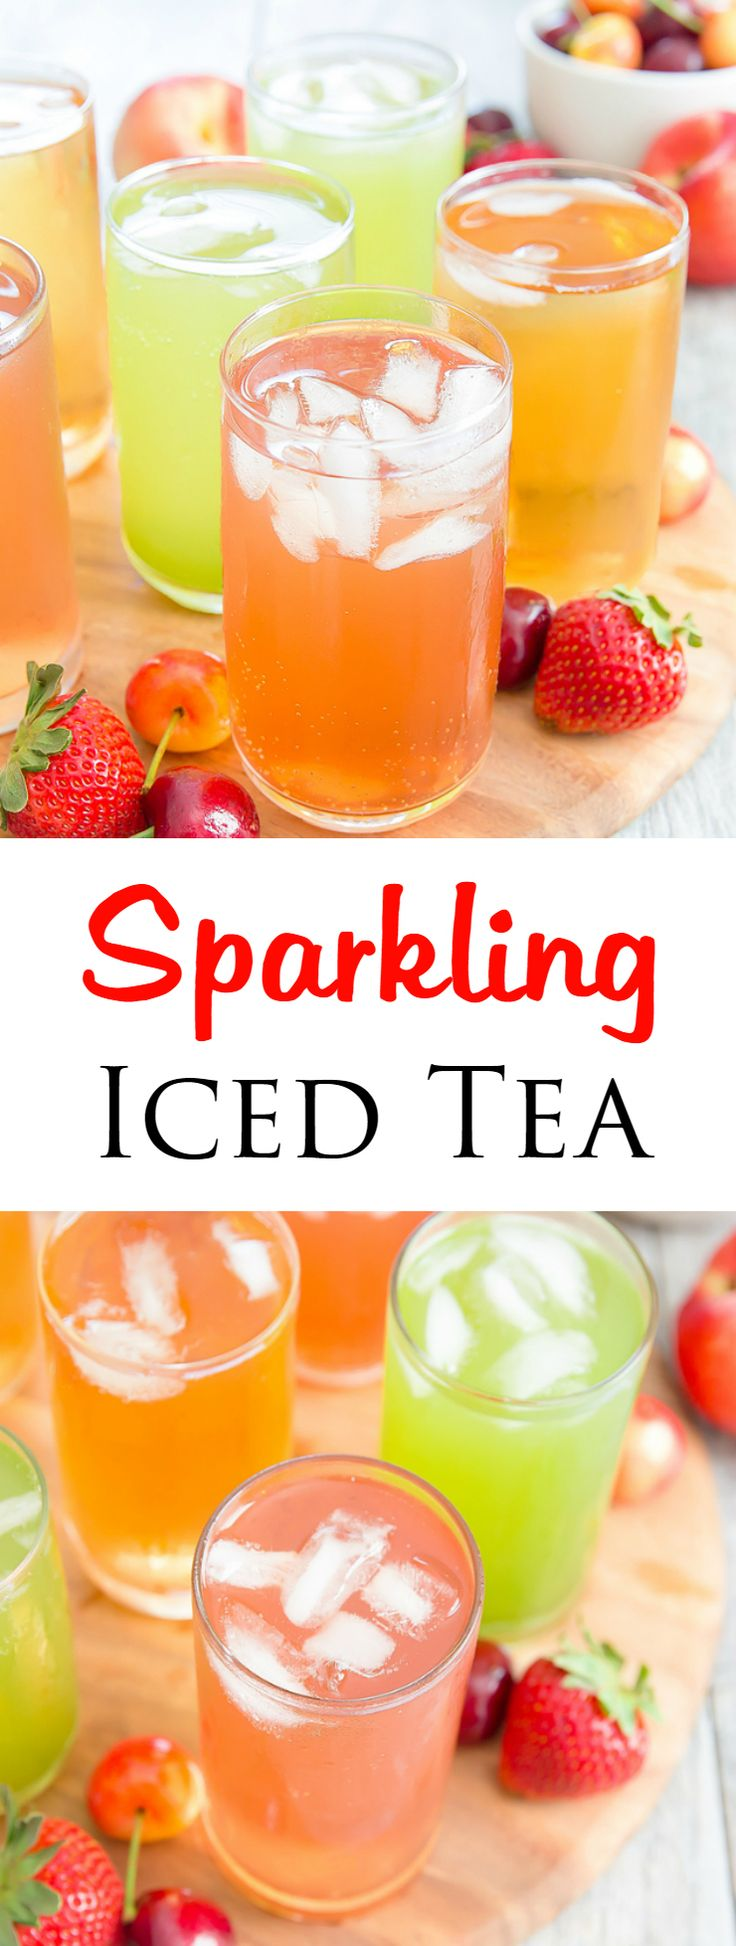 Sparkling Iced Tea. A refreshing and easy drink for a summer party!